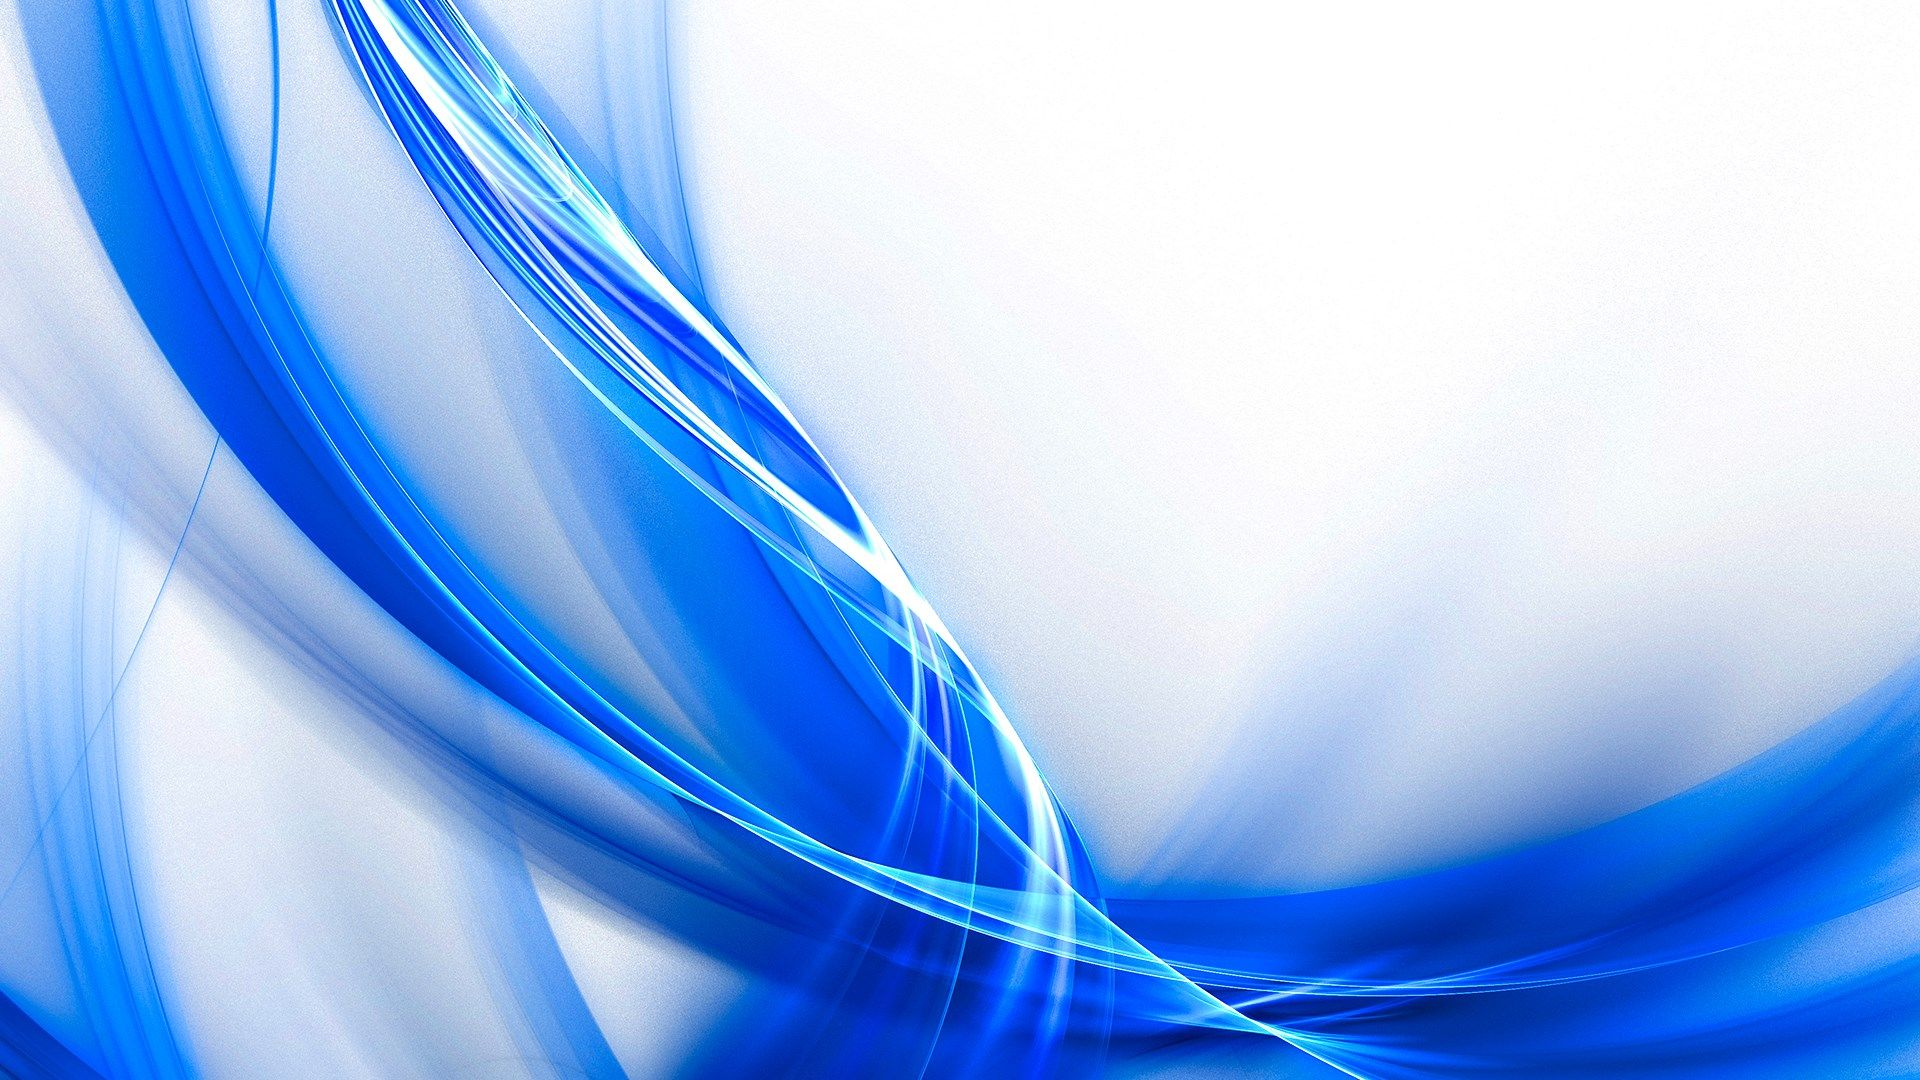 Blue White Images For Desktop Background 1920x1080 407 Kb Cool Backgrounds Wallpapers Blue Background Images Black And Blue Wallpaper